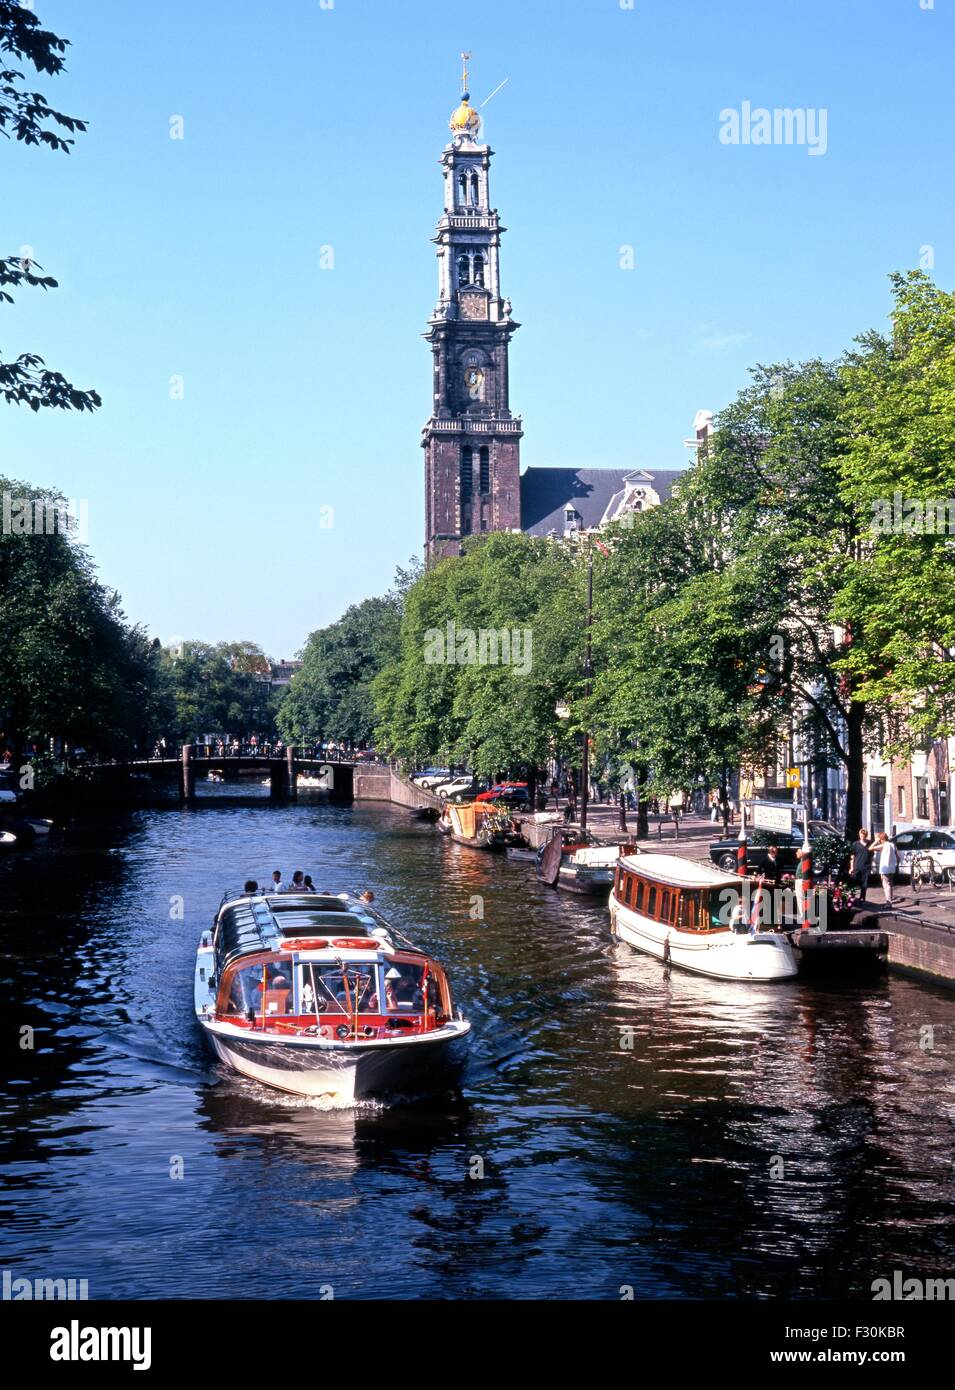 Boats on the Prinsengracht with the Westerkerk to rear, Amsterdam, Holland, Netherlands, Europe. - Stock Image